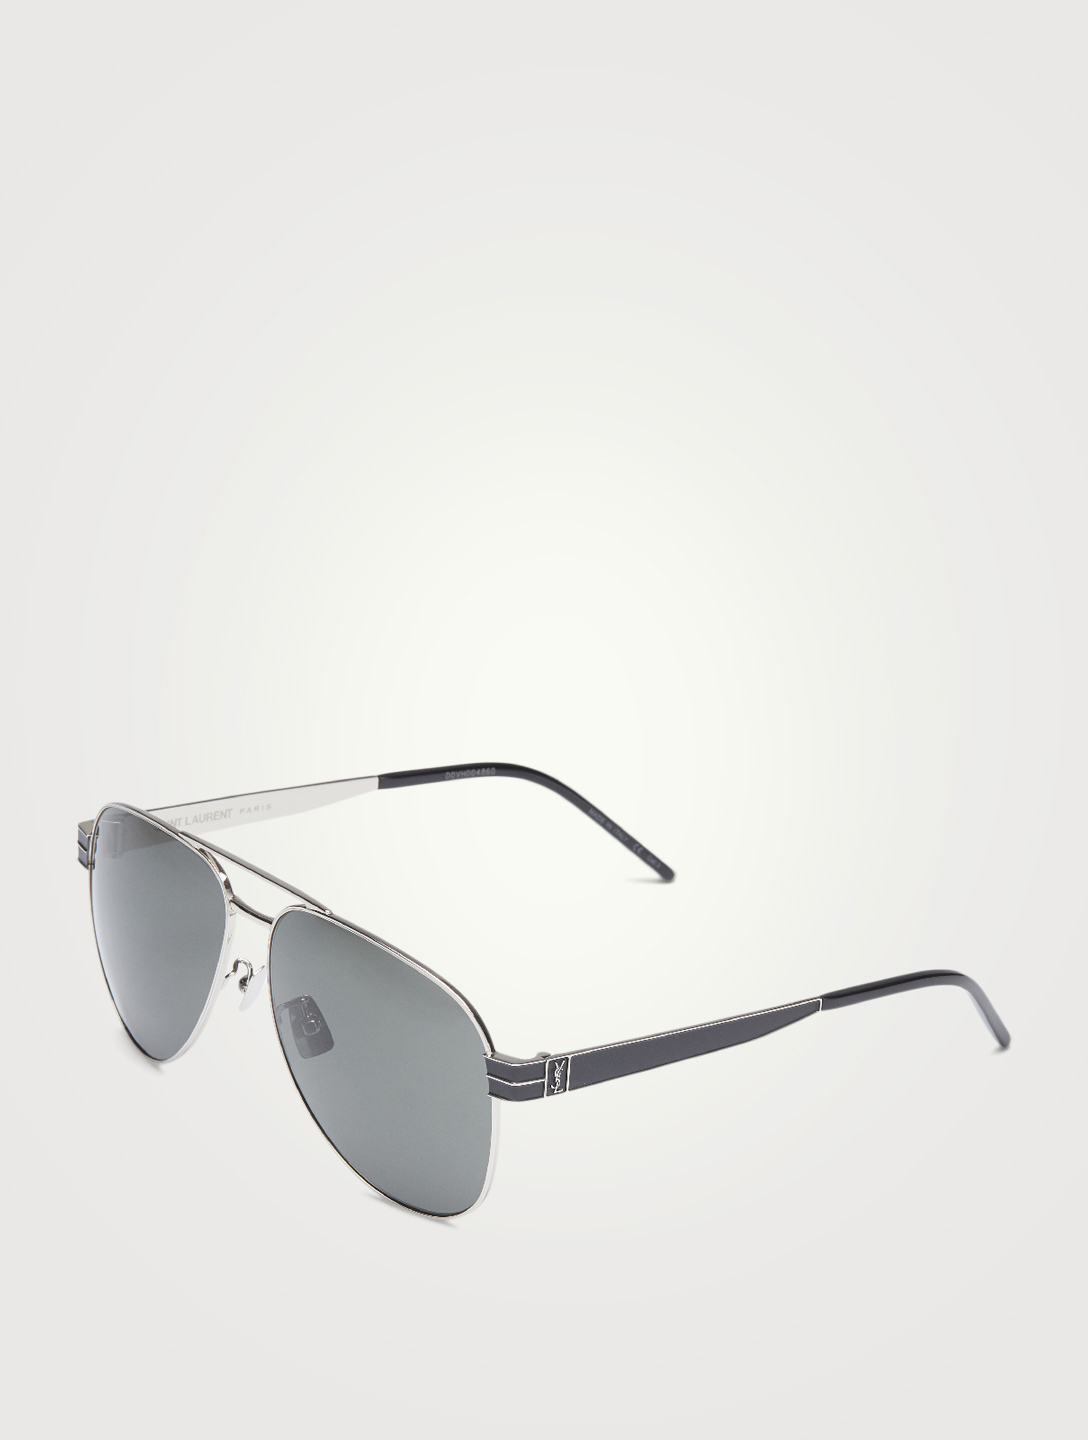 SAINT LAURENT SL M53 Aviator Sunglasses Men's Metallic